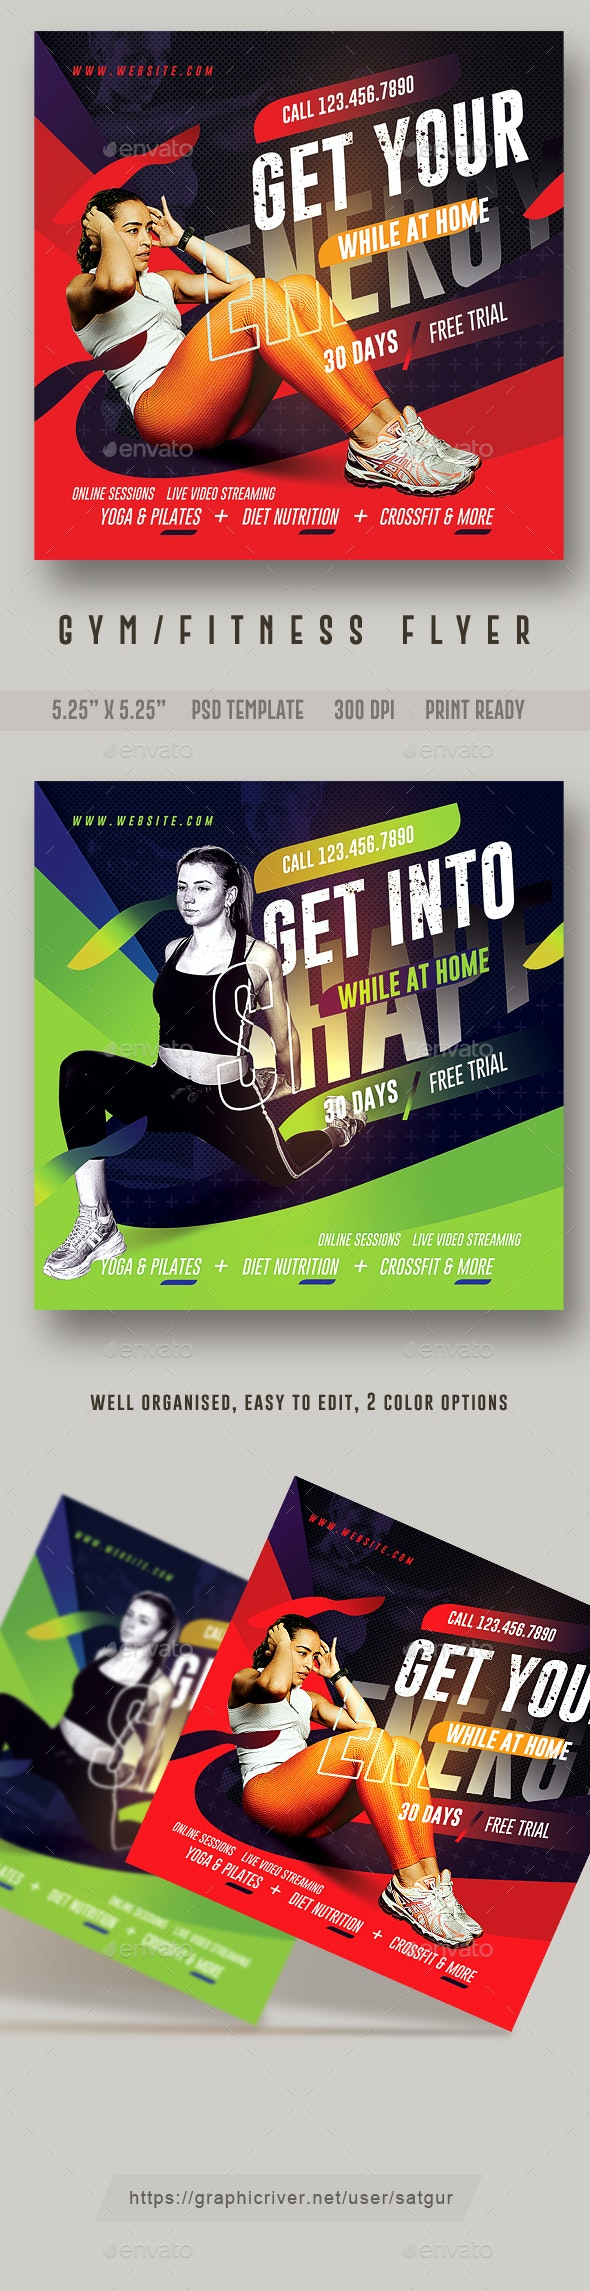 Gym Flyer / Fitness Flyer Template for online classes - Sports Events